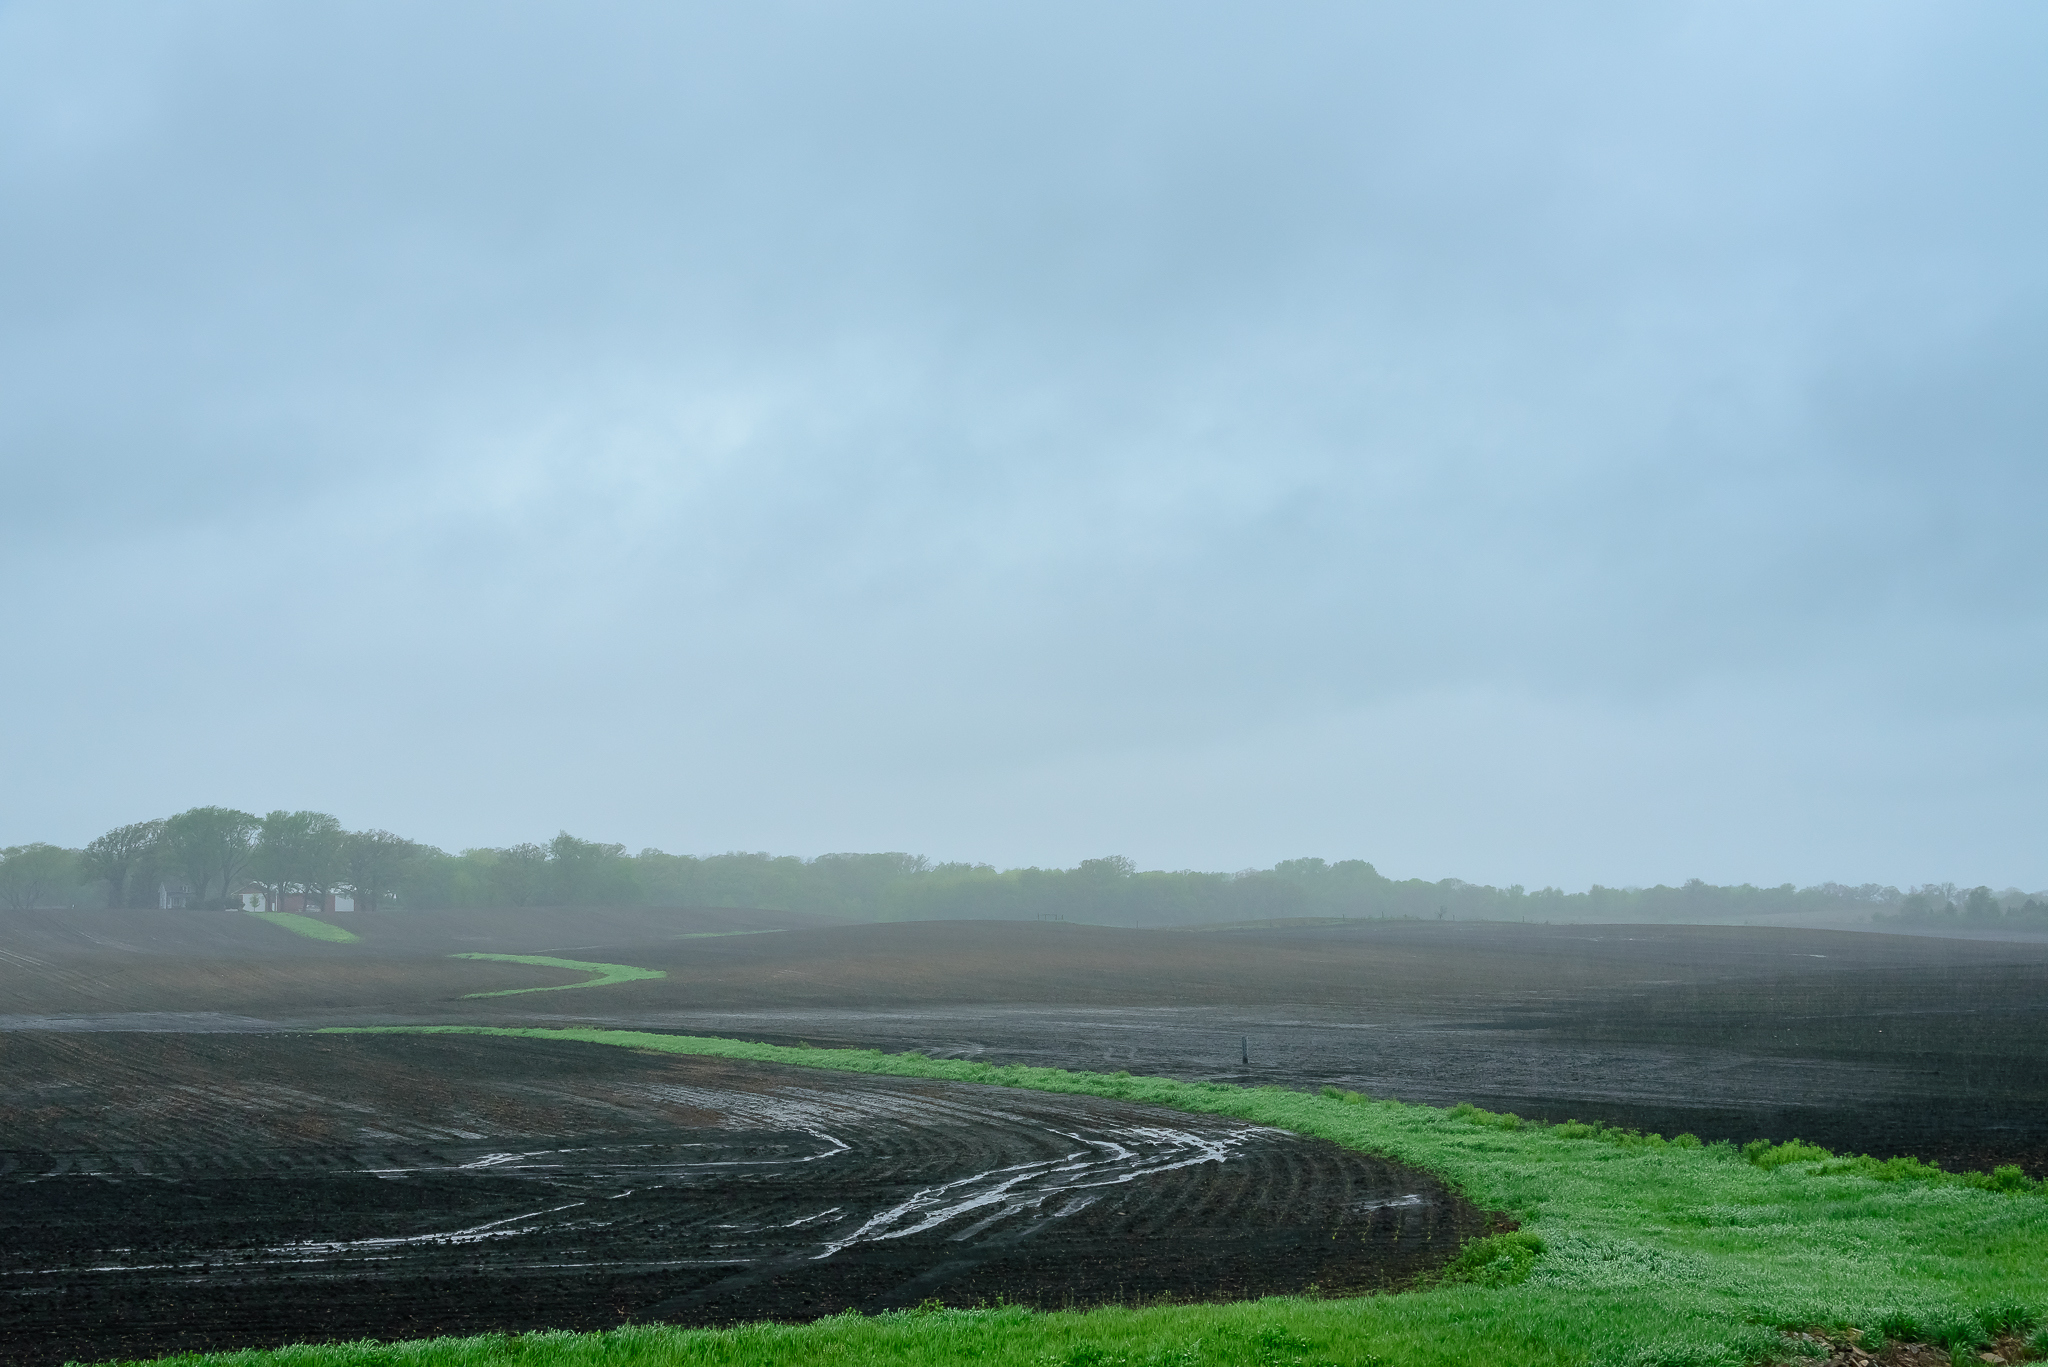 The day of rain. All the rain. Emmons, MN.